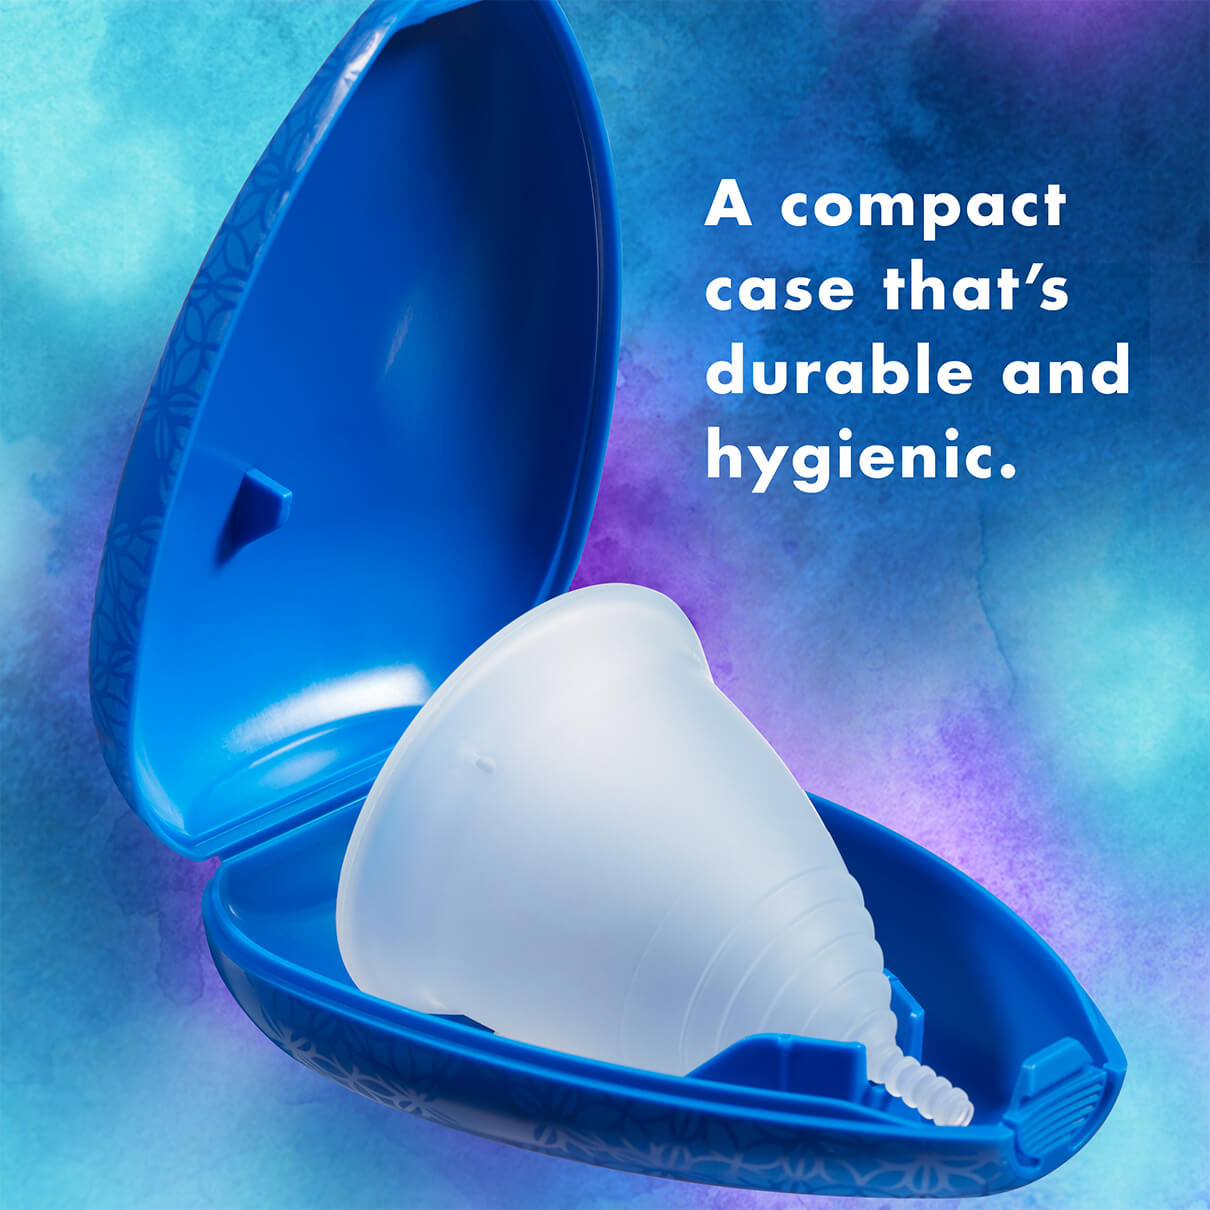 Tampax menstrual cup